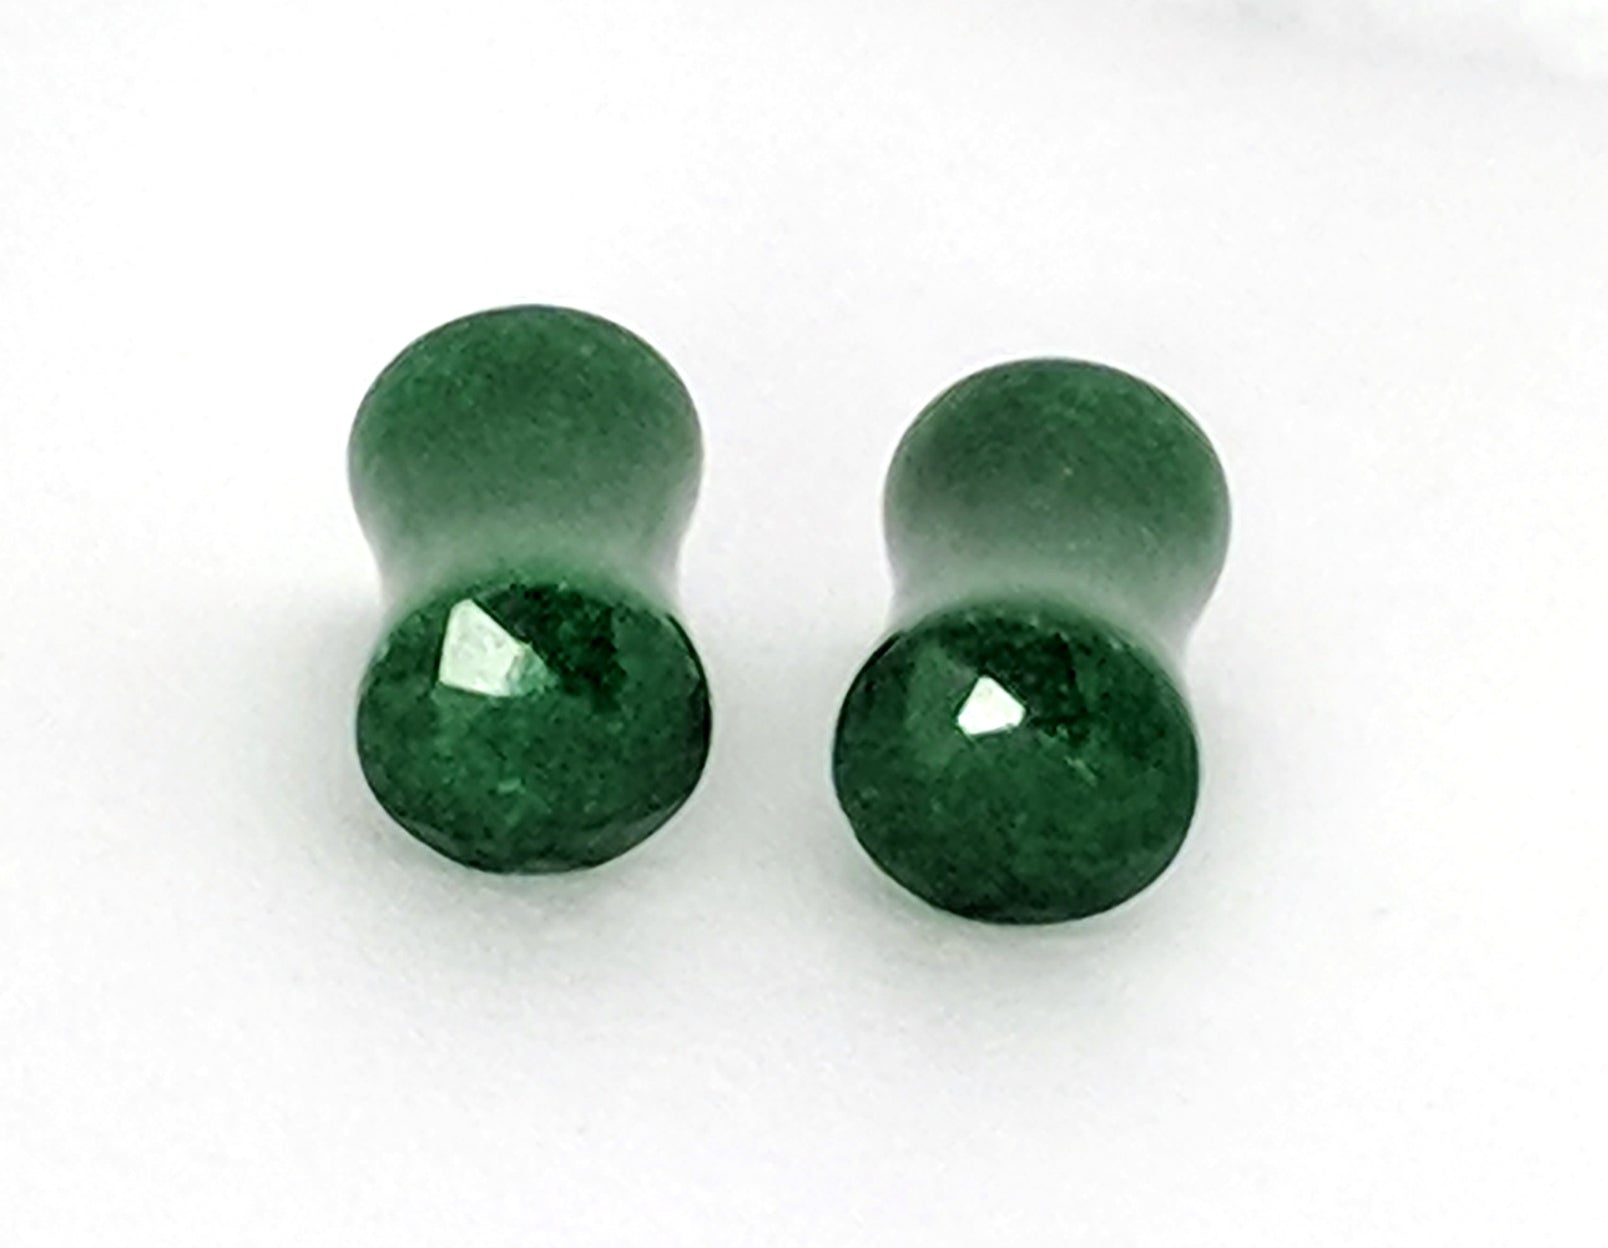 Green Jade Stone Plugs